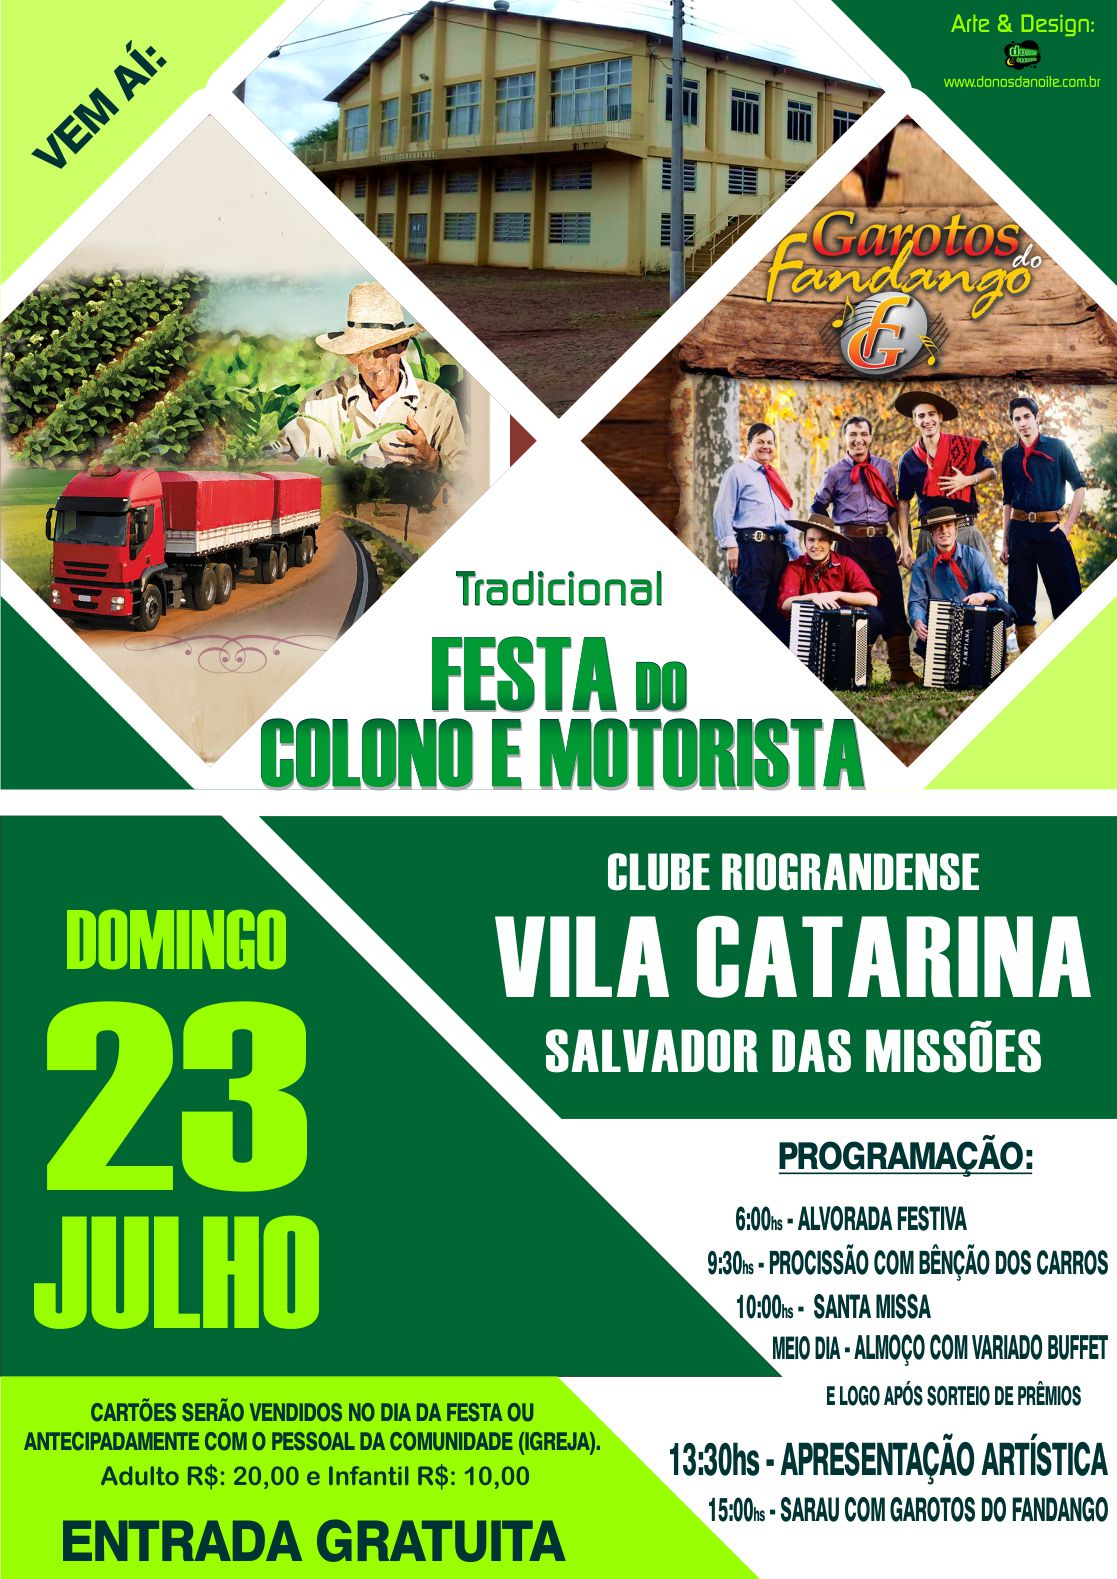 festa_do_colono_e_motorista_vila_catarina_23_07_17